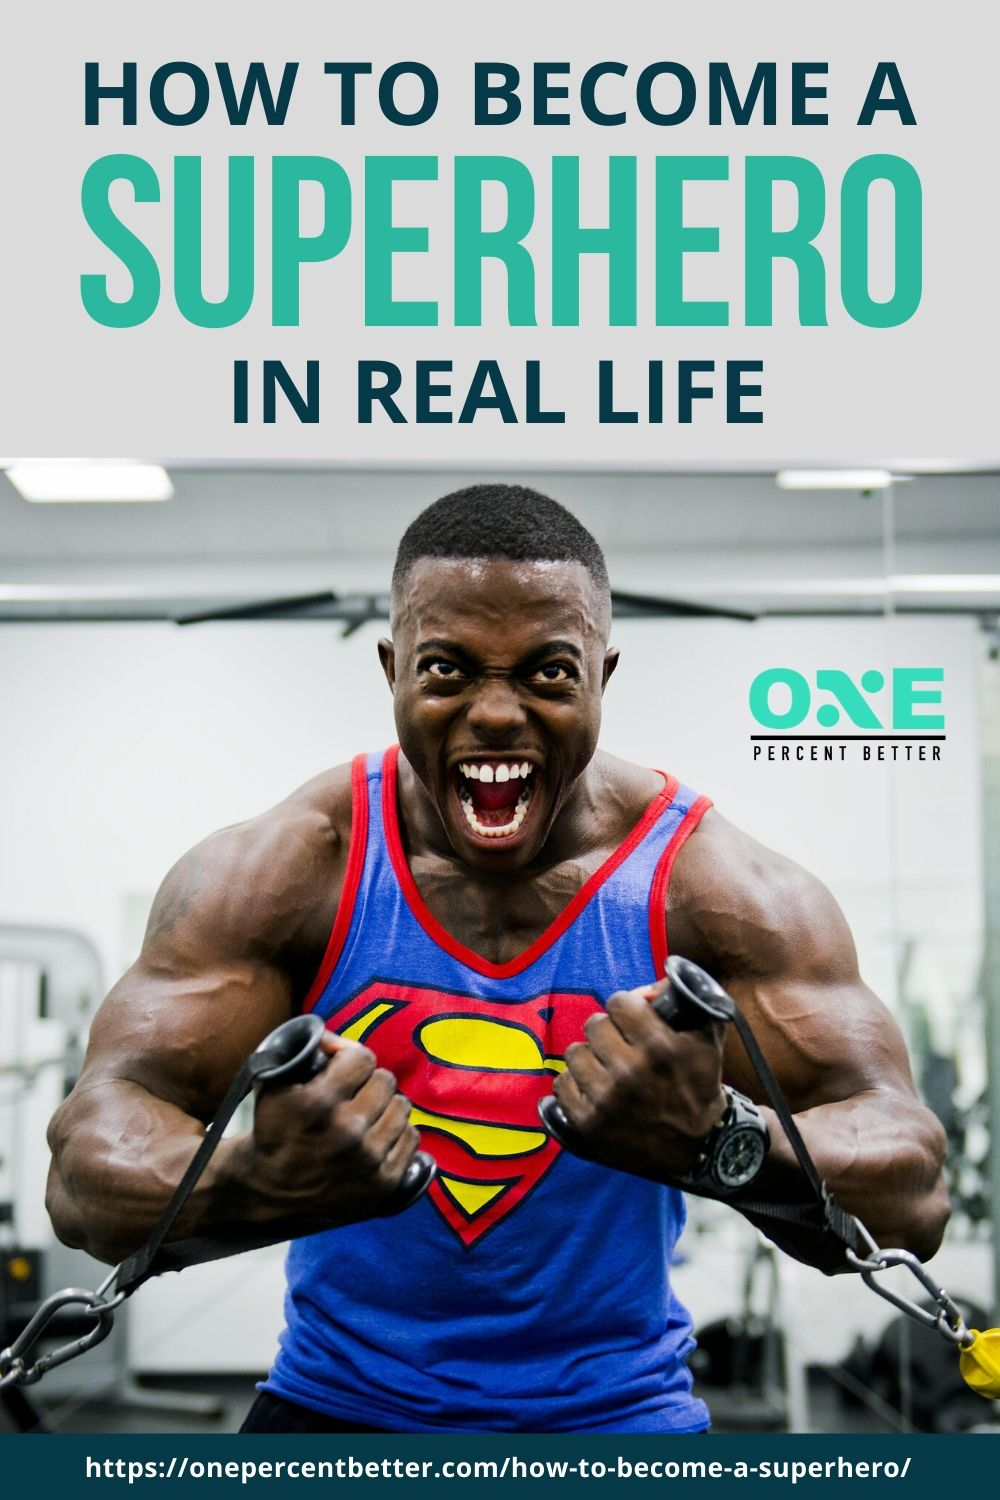 How To Become A Superhero In Real Life https://onepercentbetter.com/how-to-become-a-superhero/